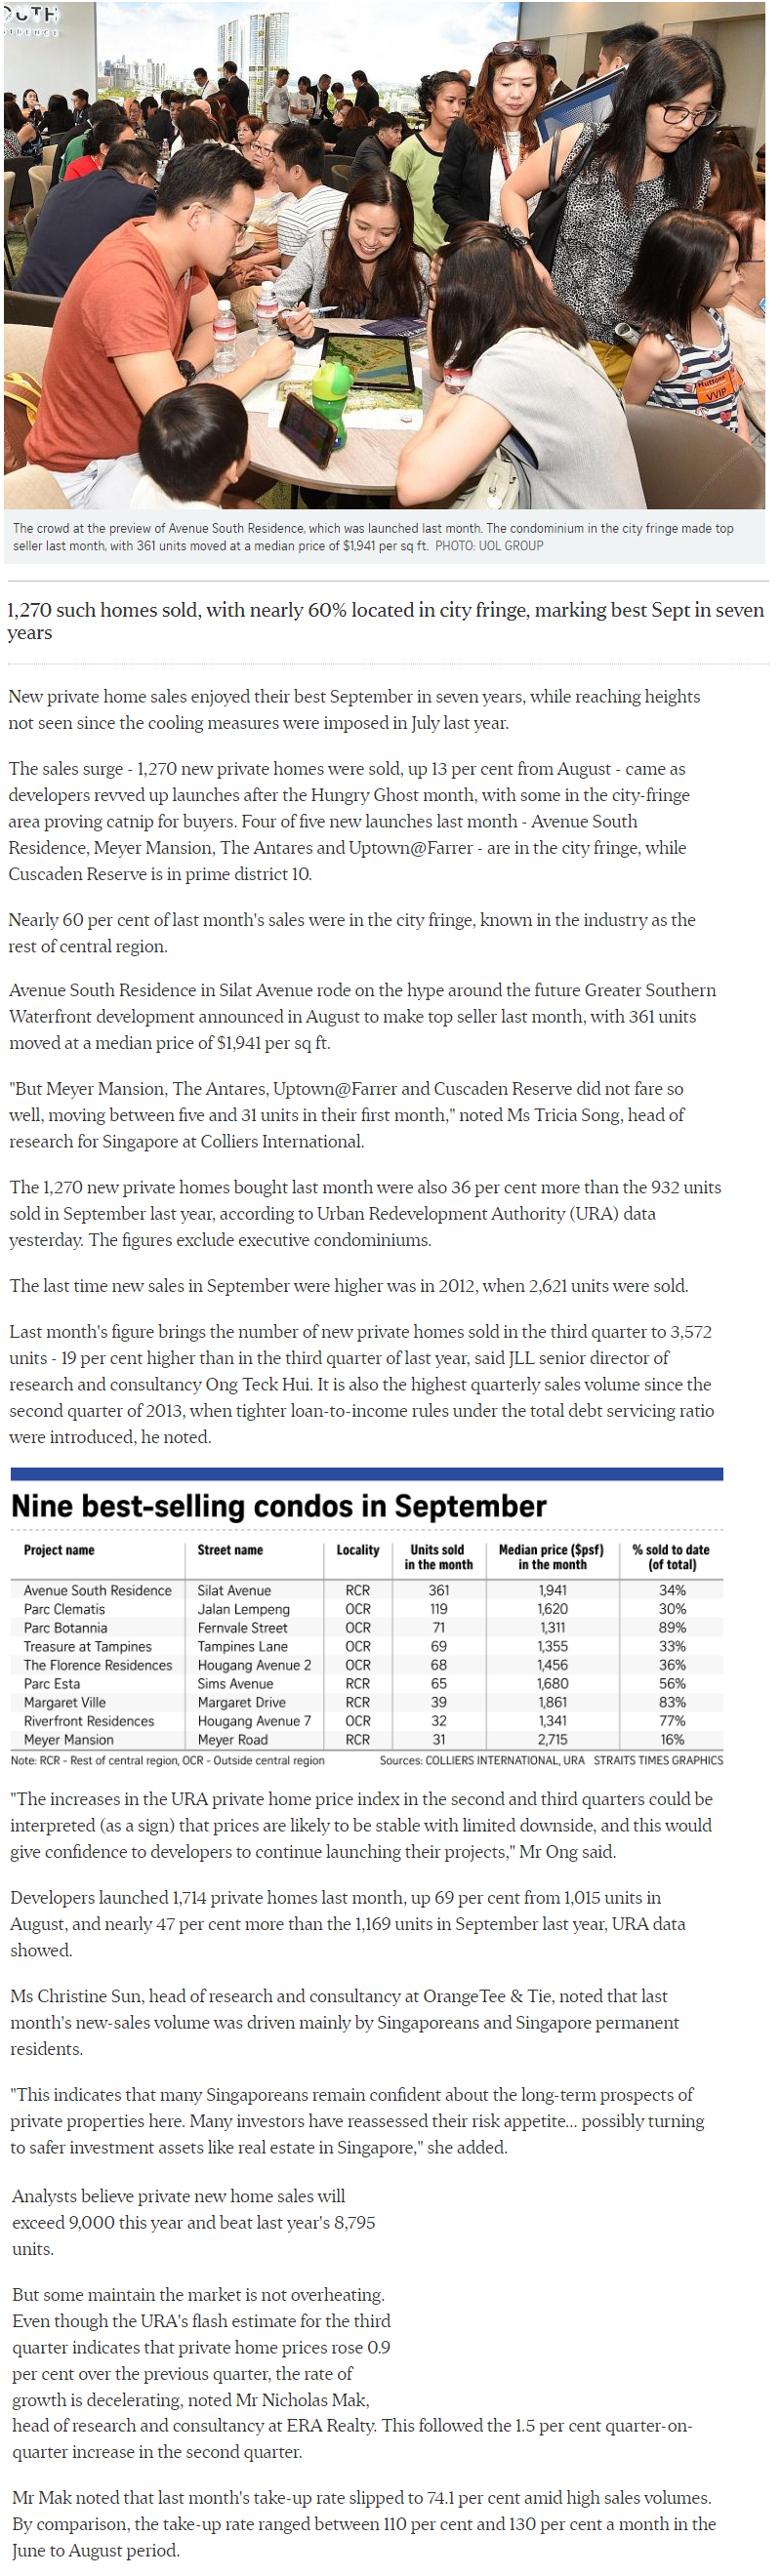 The Lumos - New private Home Sales Hit A Hight In September